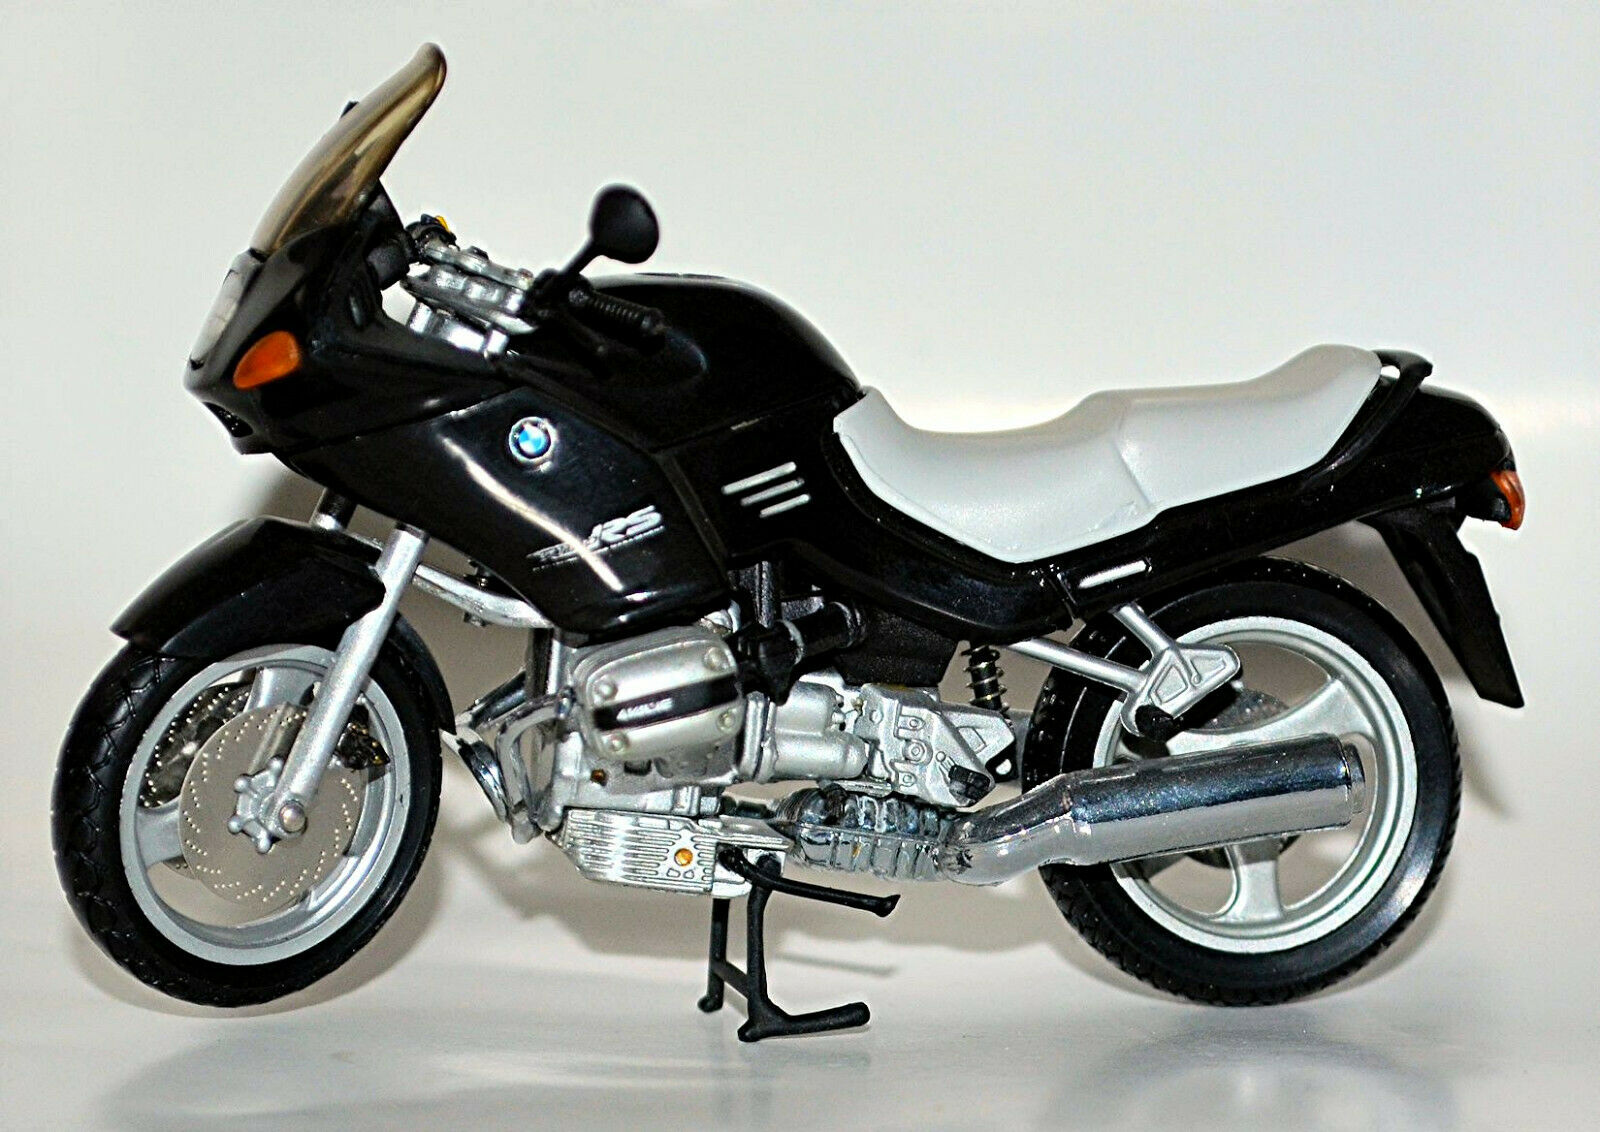 Bmw R 1100 Rs Motorcycle Black 1 24 Minichamps For Sale Online